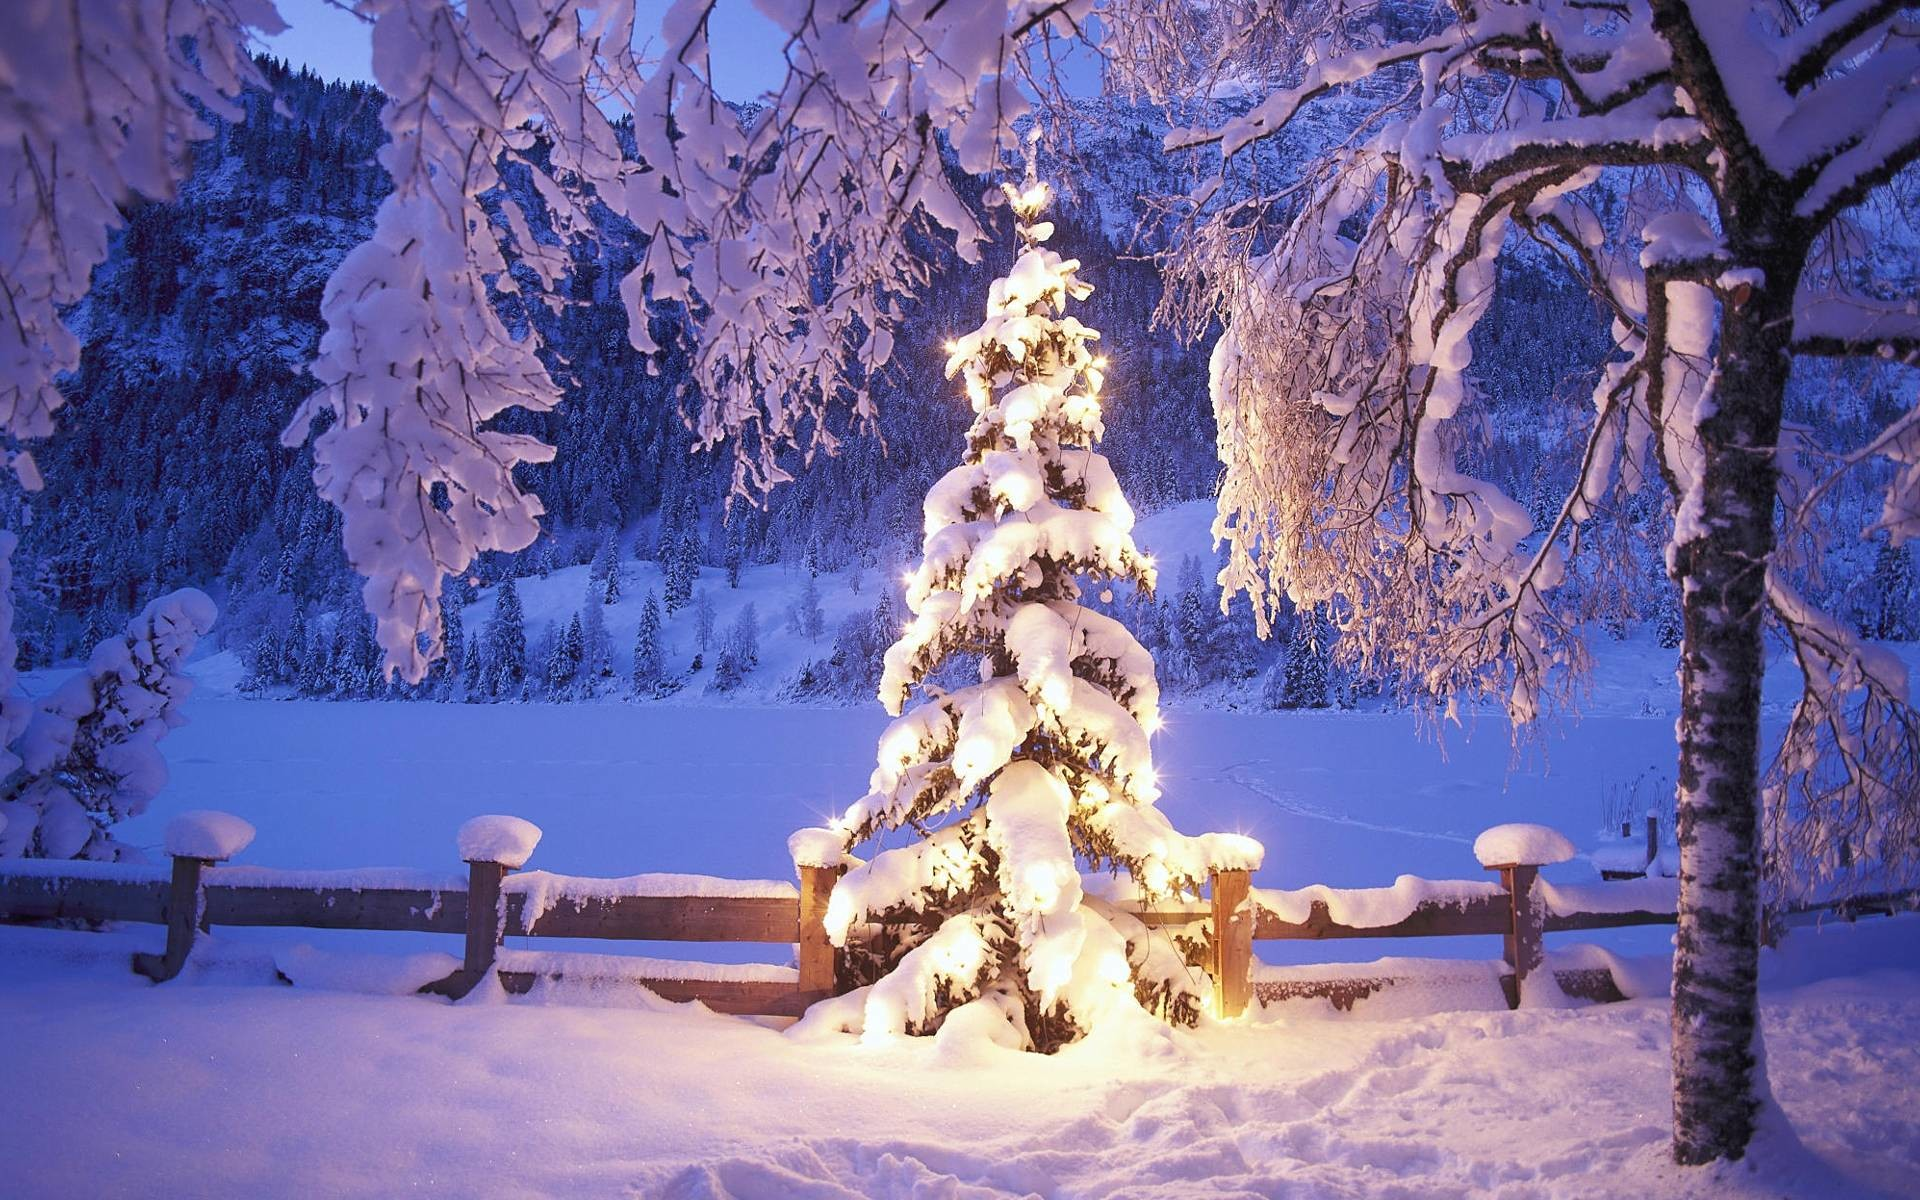 Wallpapers For > Christmas Winter Backgrounds For Desktop